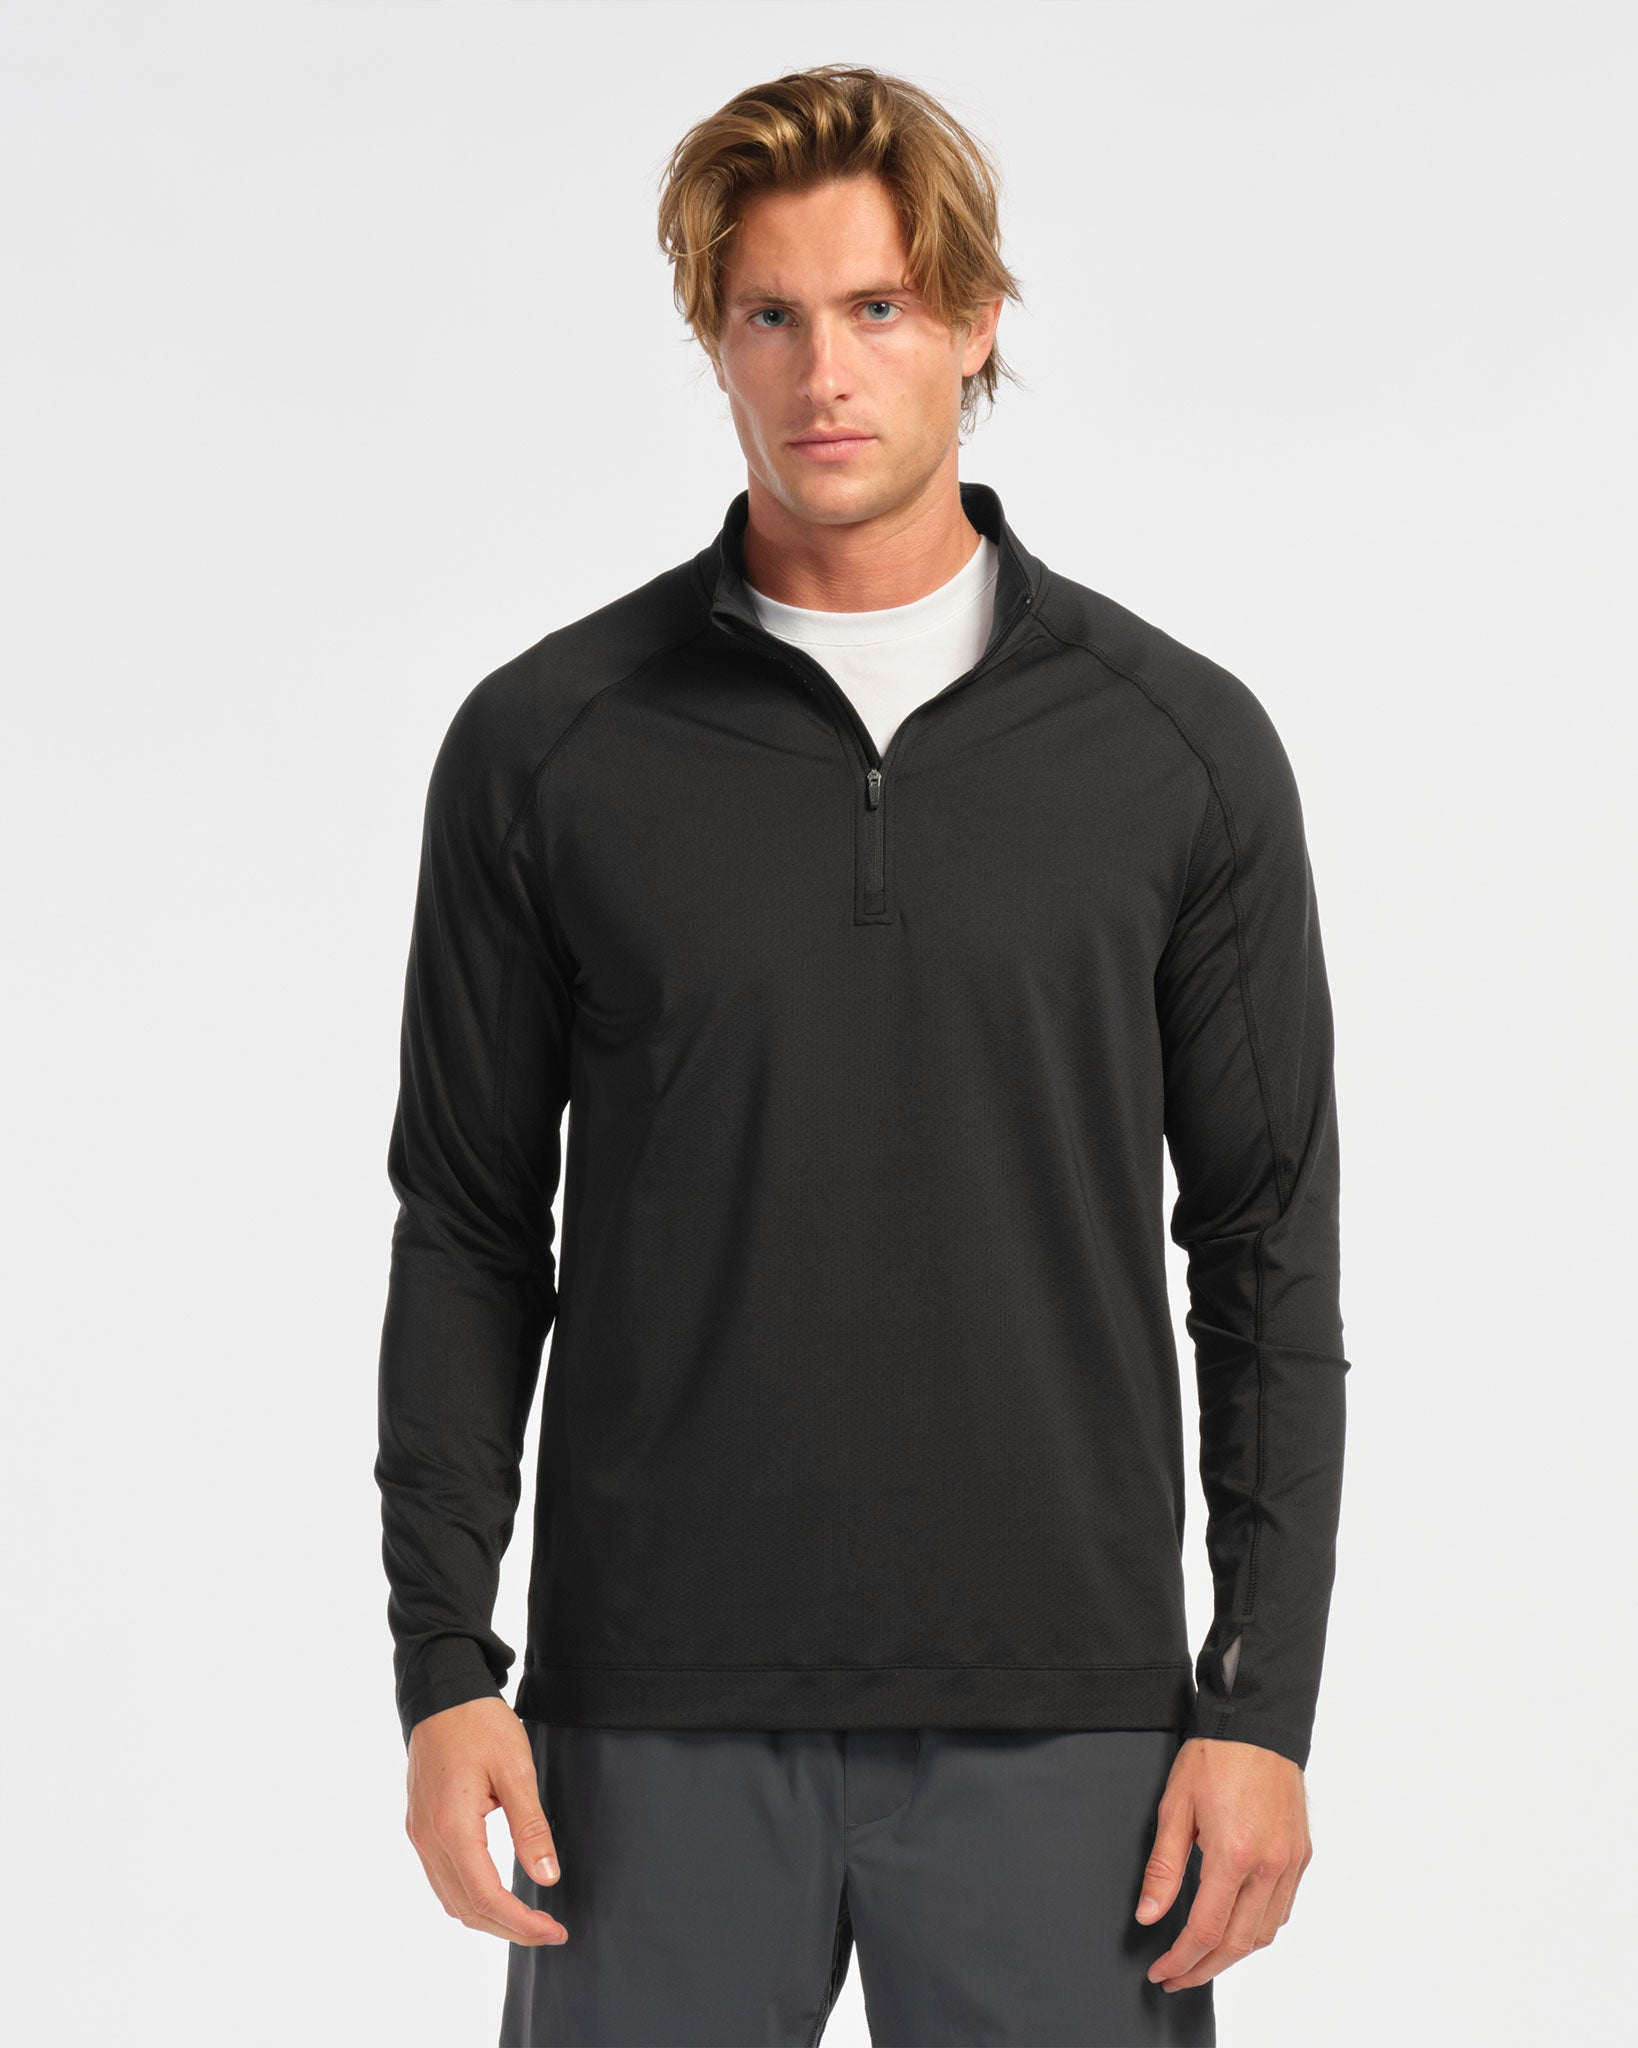 Courtside 1/4 Zip - Black